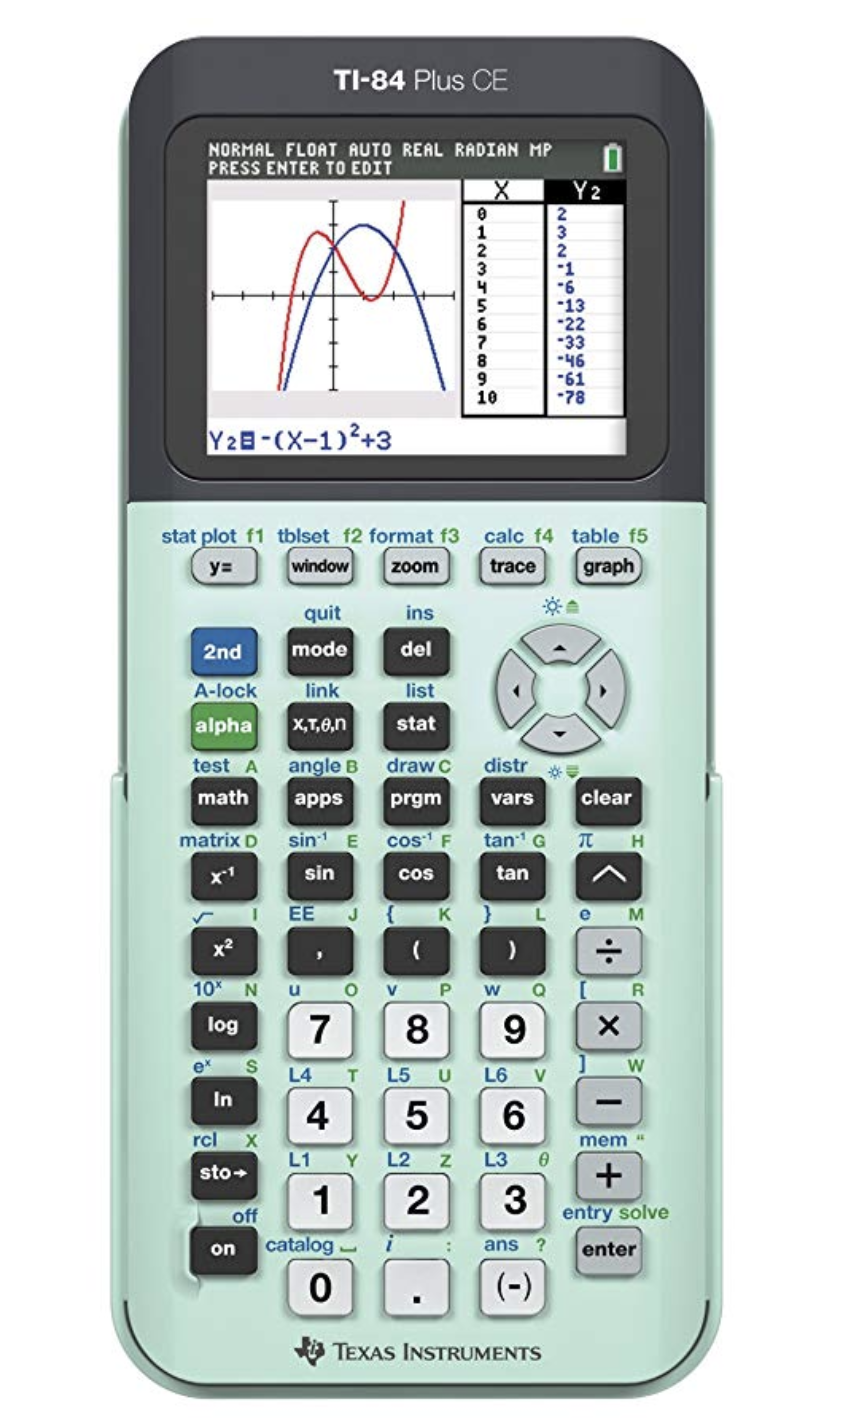 This article is intended for use with the popular TI-83, TI-84 and TI-84 Plus CE calculators. The calculator shown here is the TI-84 Plus CE. Please use this photo for reference when reading the tips on this article.